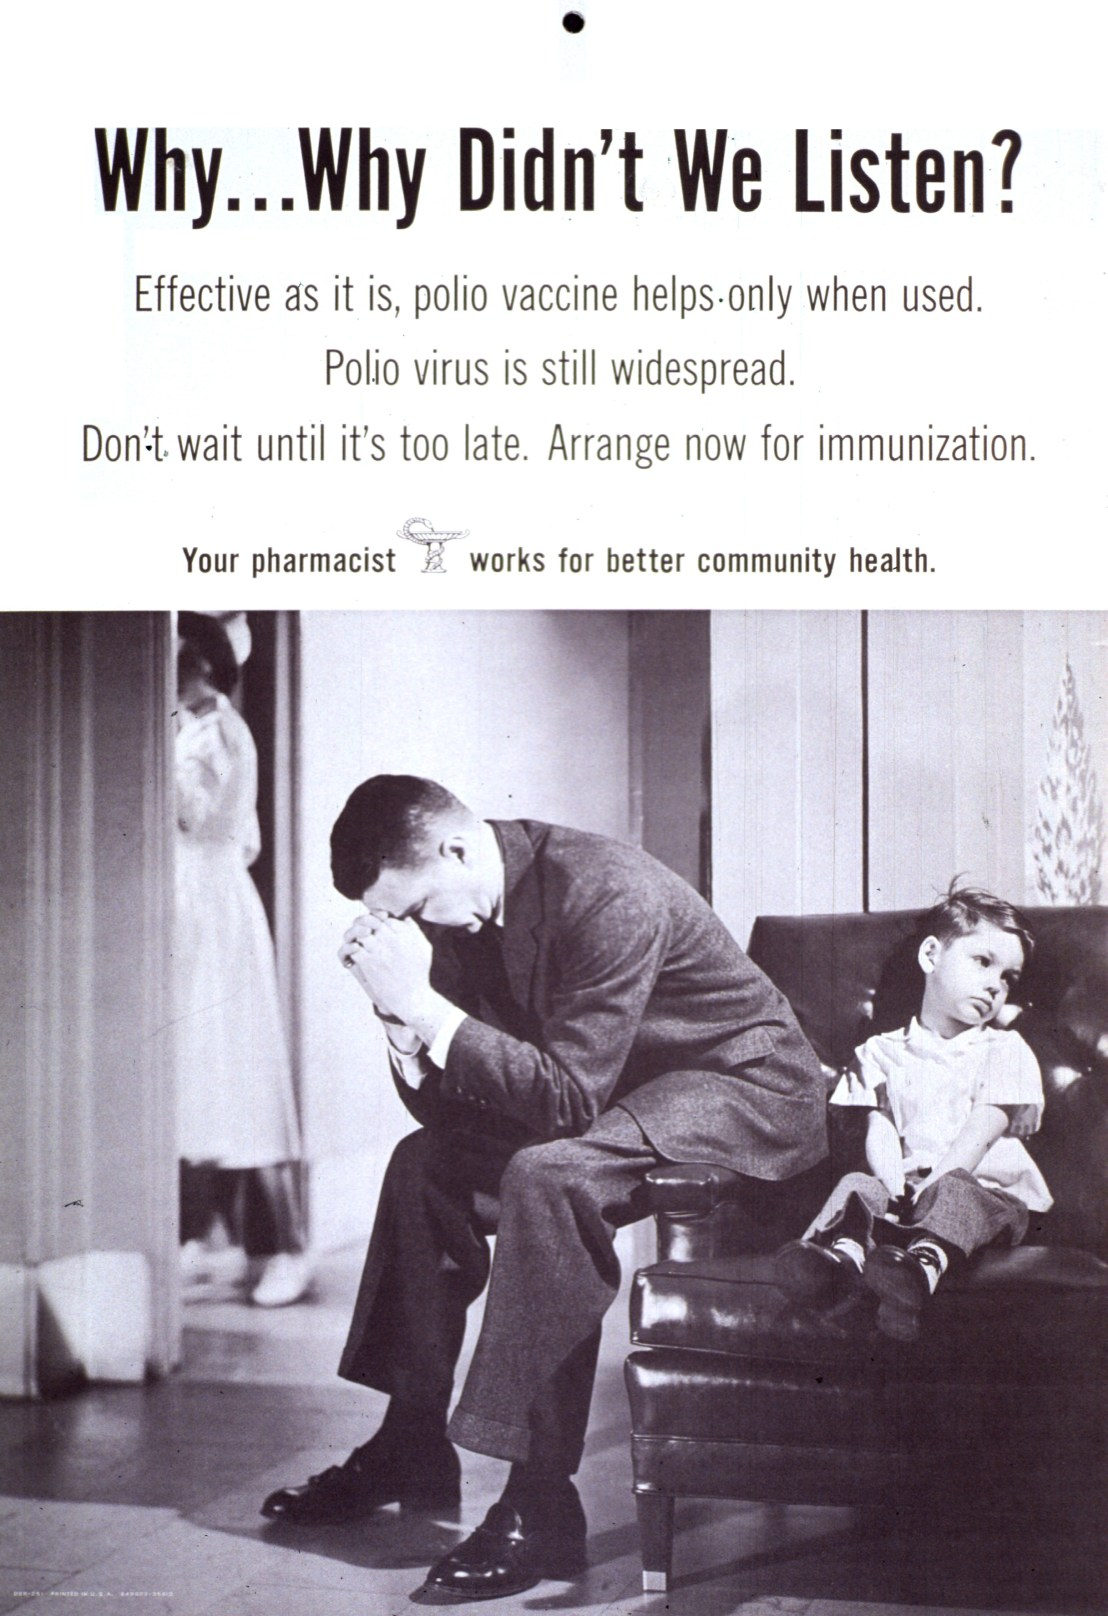 Polio Vaccine - don't wait until it's too late.